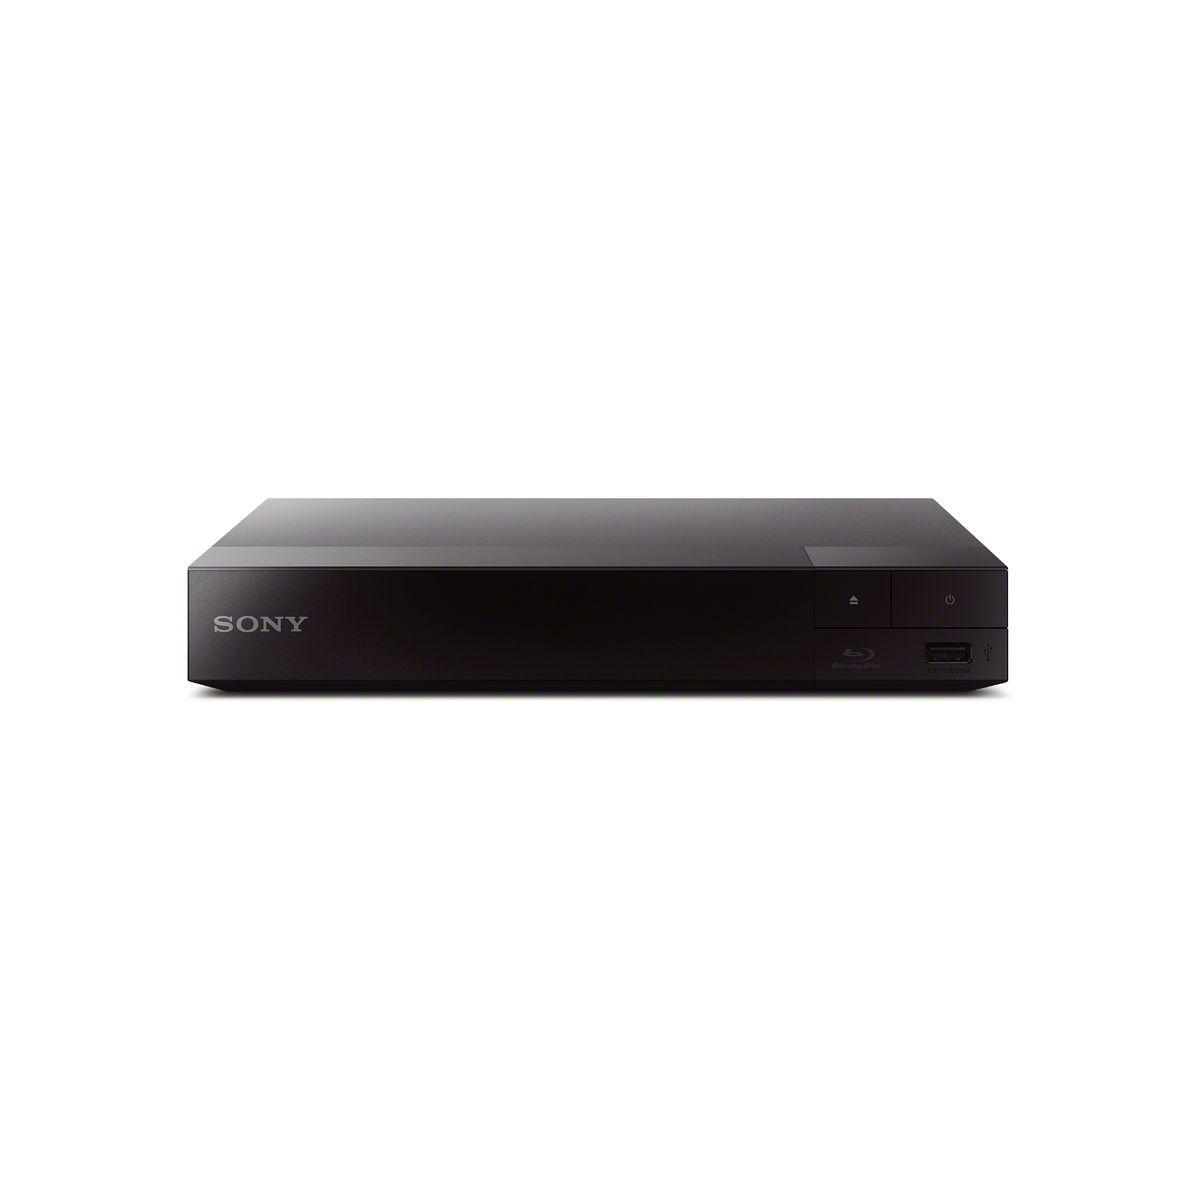 Lecteur blu-ray sony bdps1700 (photo)